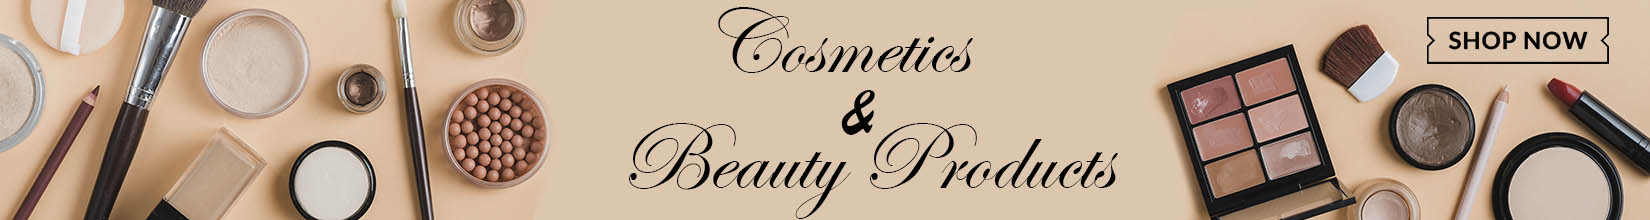 Buy genuine cosmetics and beauty products at Choicemandu Online Shopping